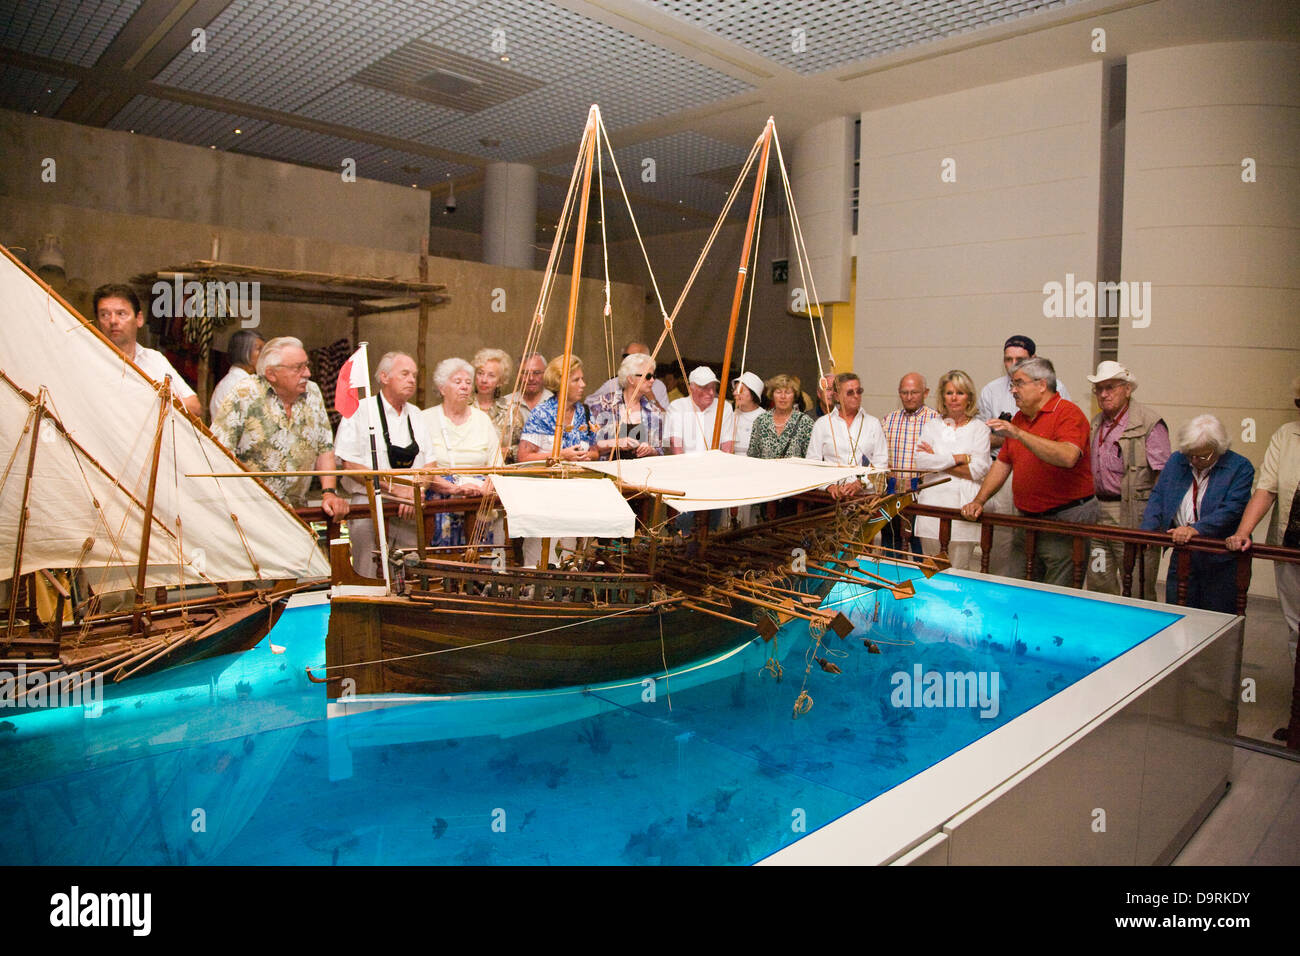 Display at the Bahrain National Museum, Manama, Bahrain - Stock Image